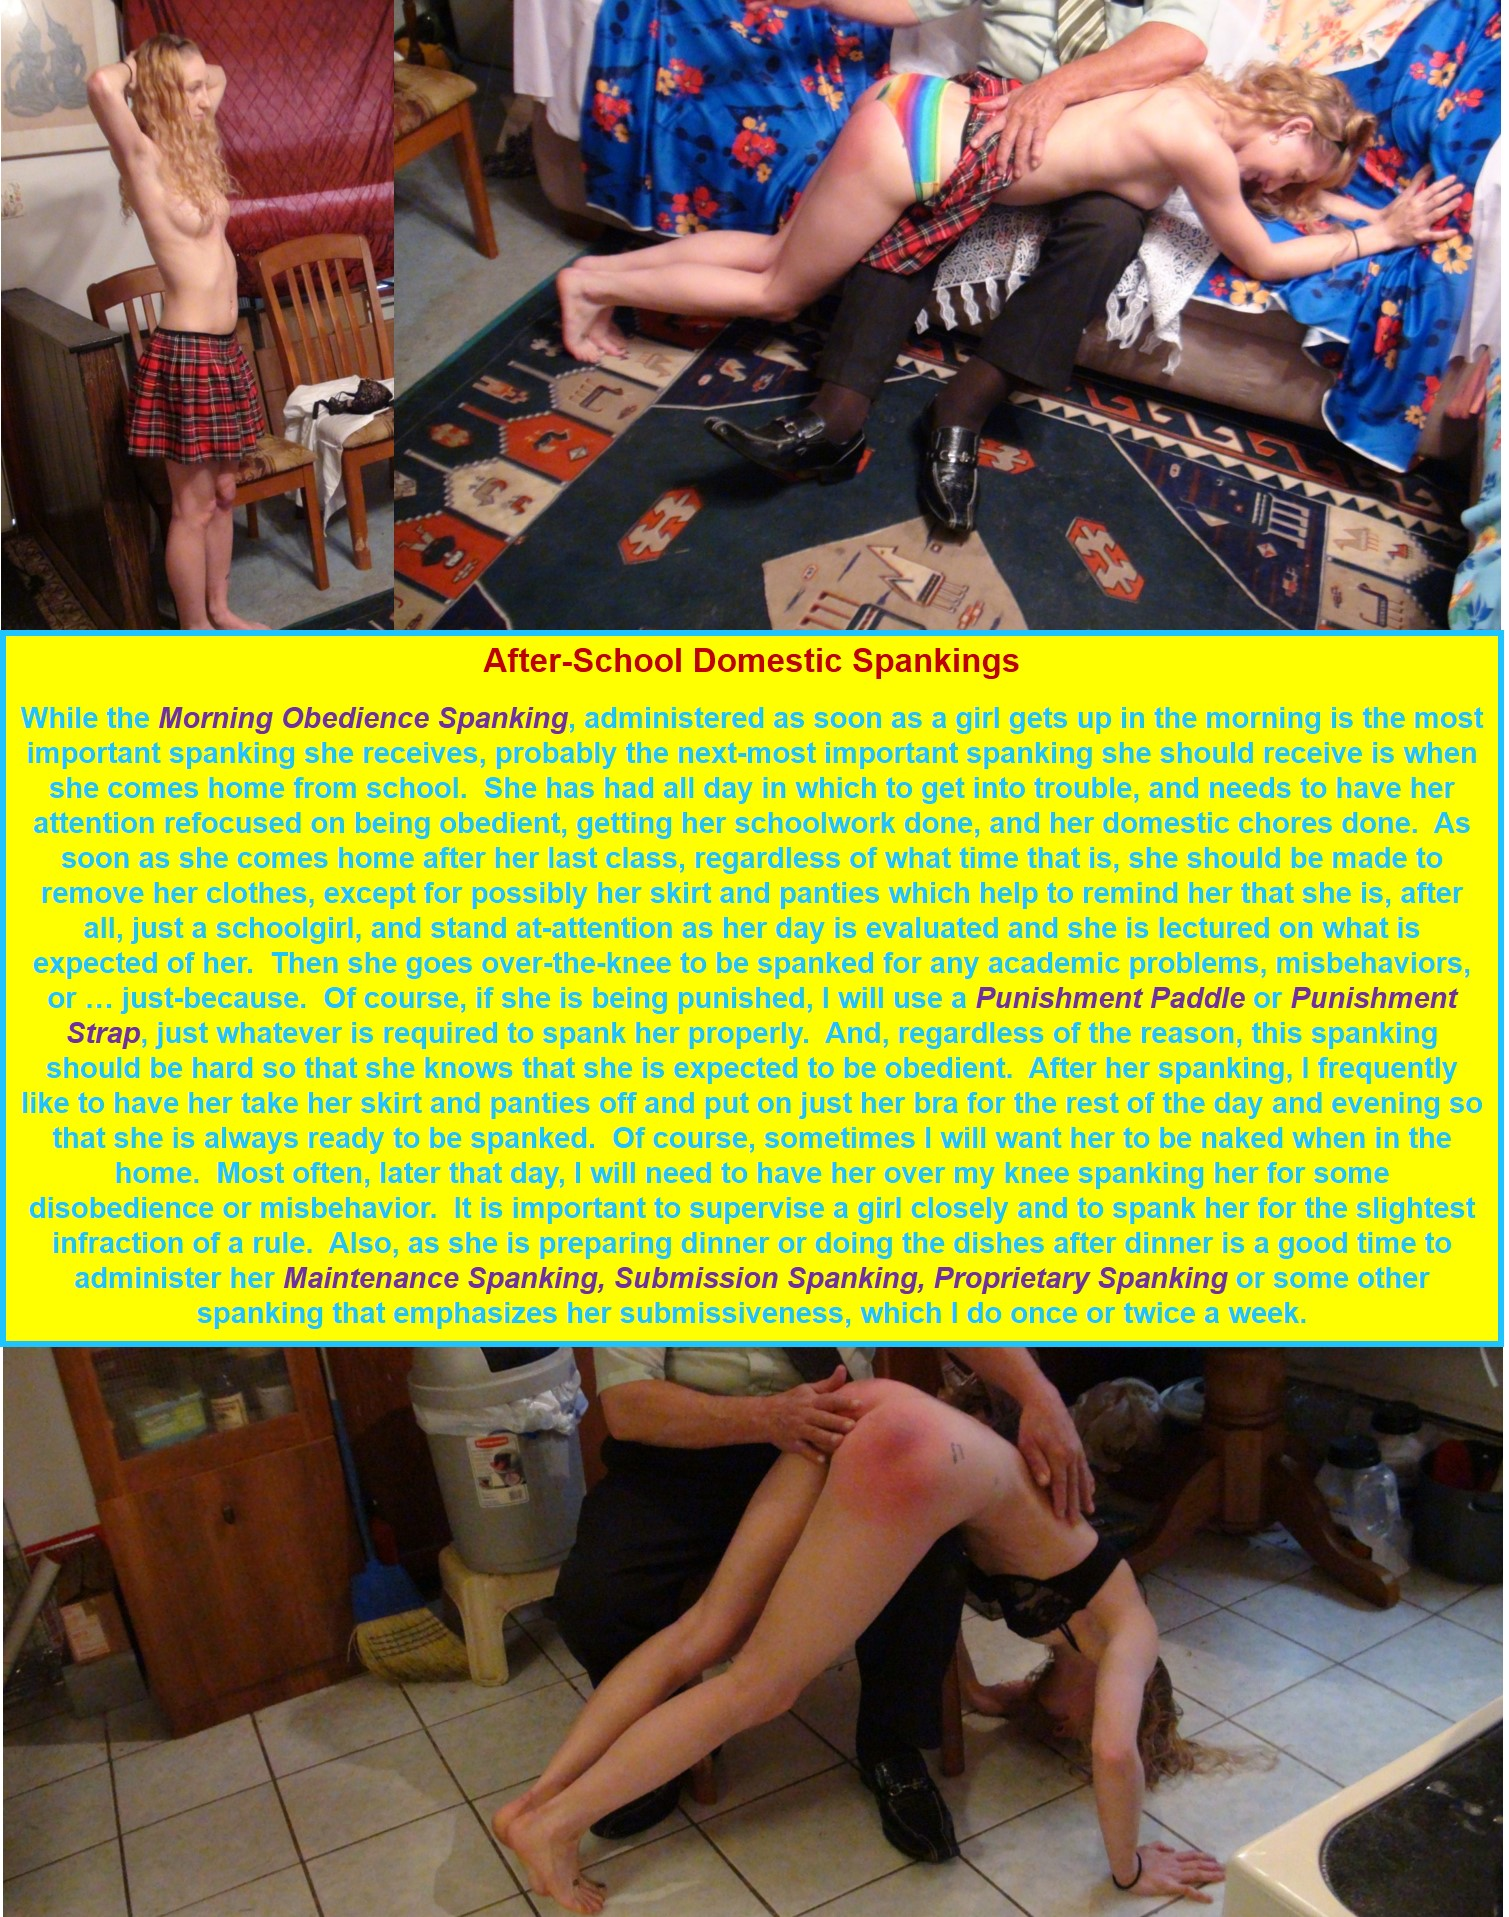 After-School Domestic Spankings